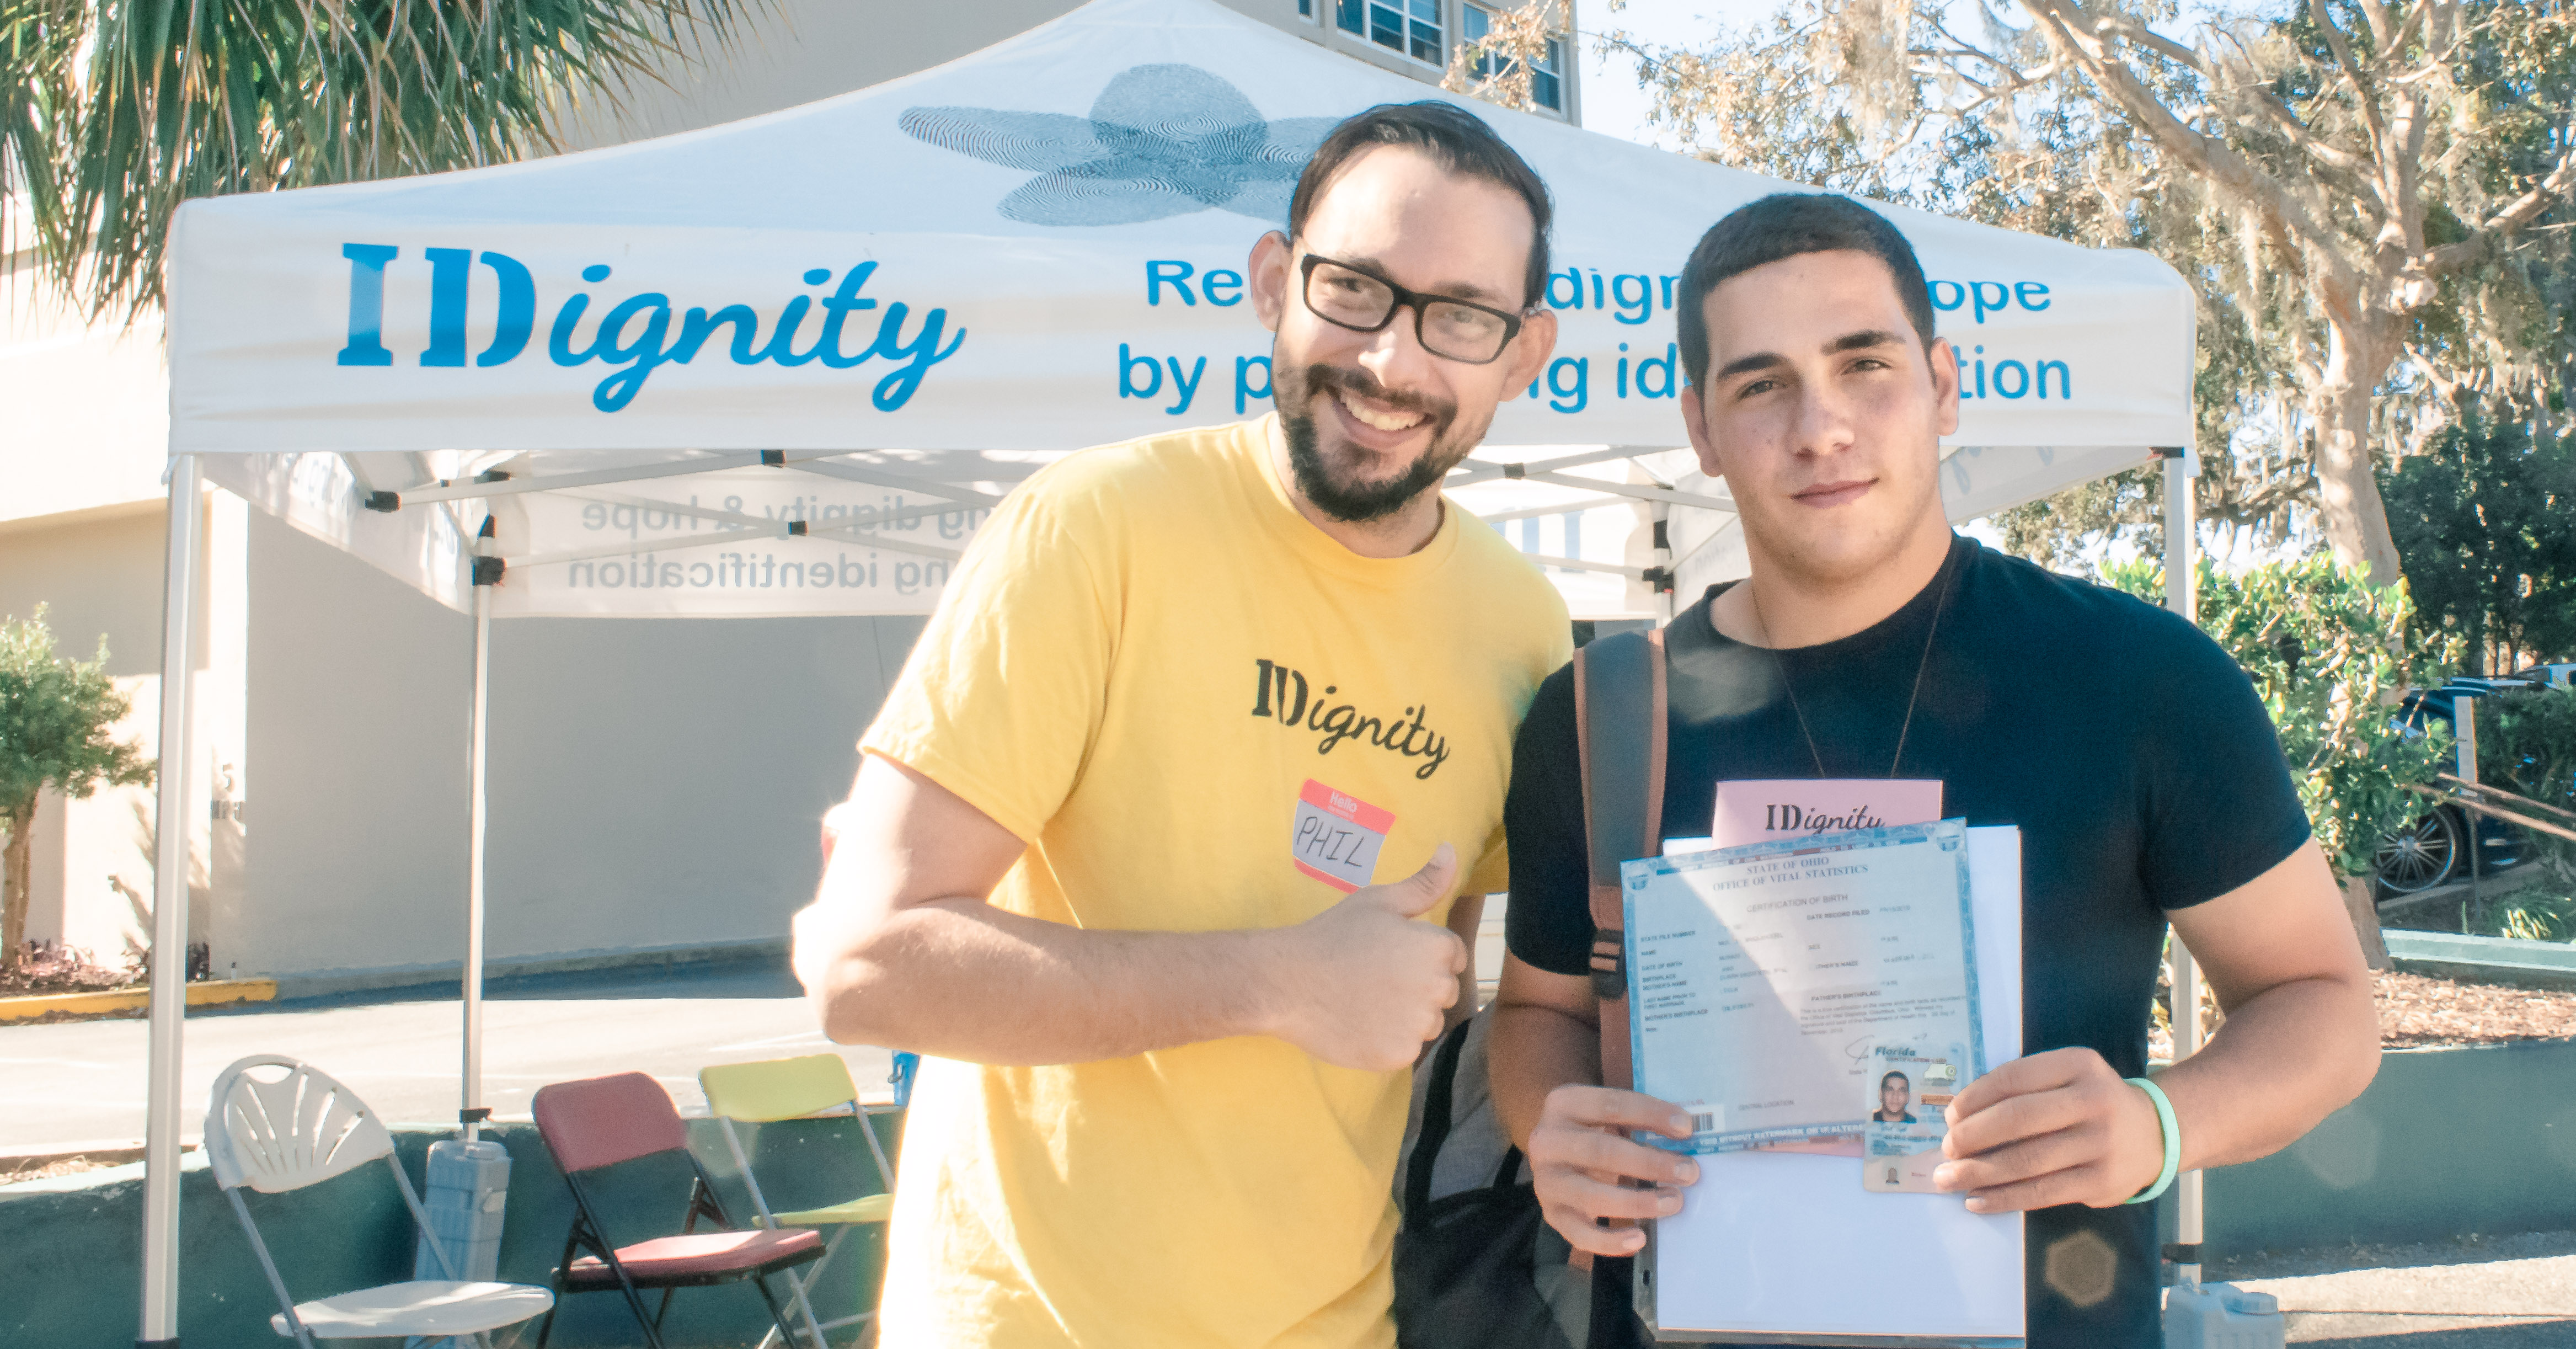 IDignity Client shows off his new birth certificate and ID to a volunteer, and the camera.